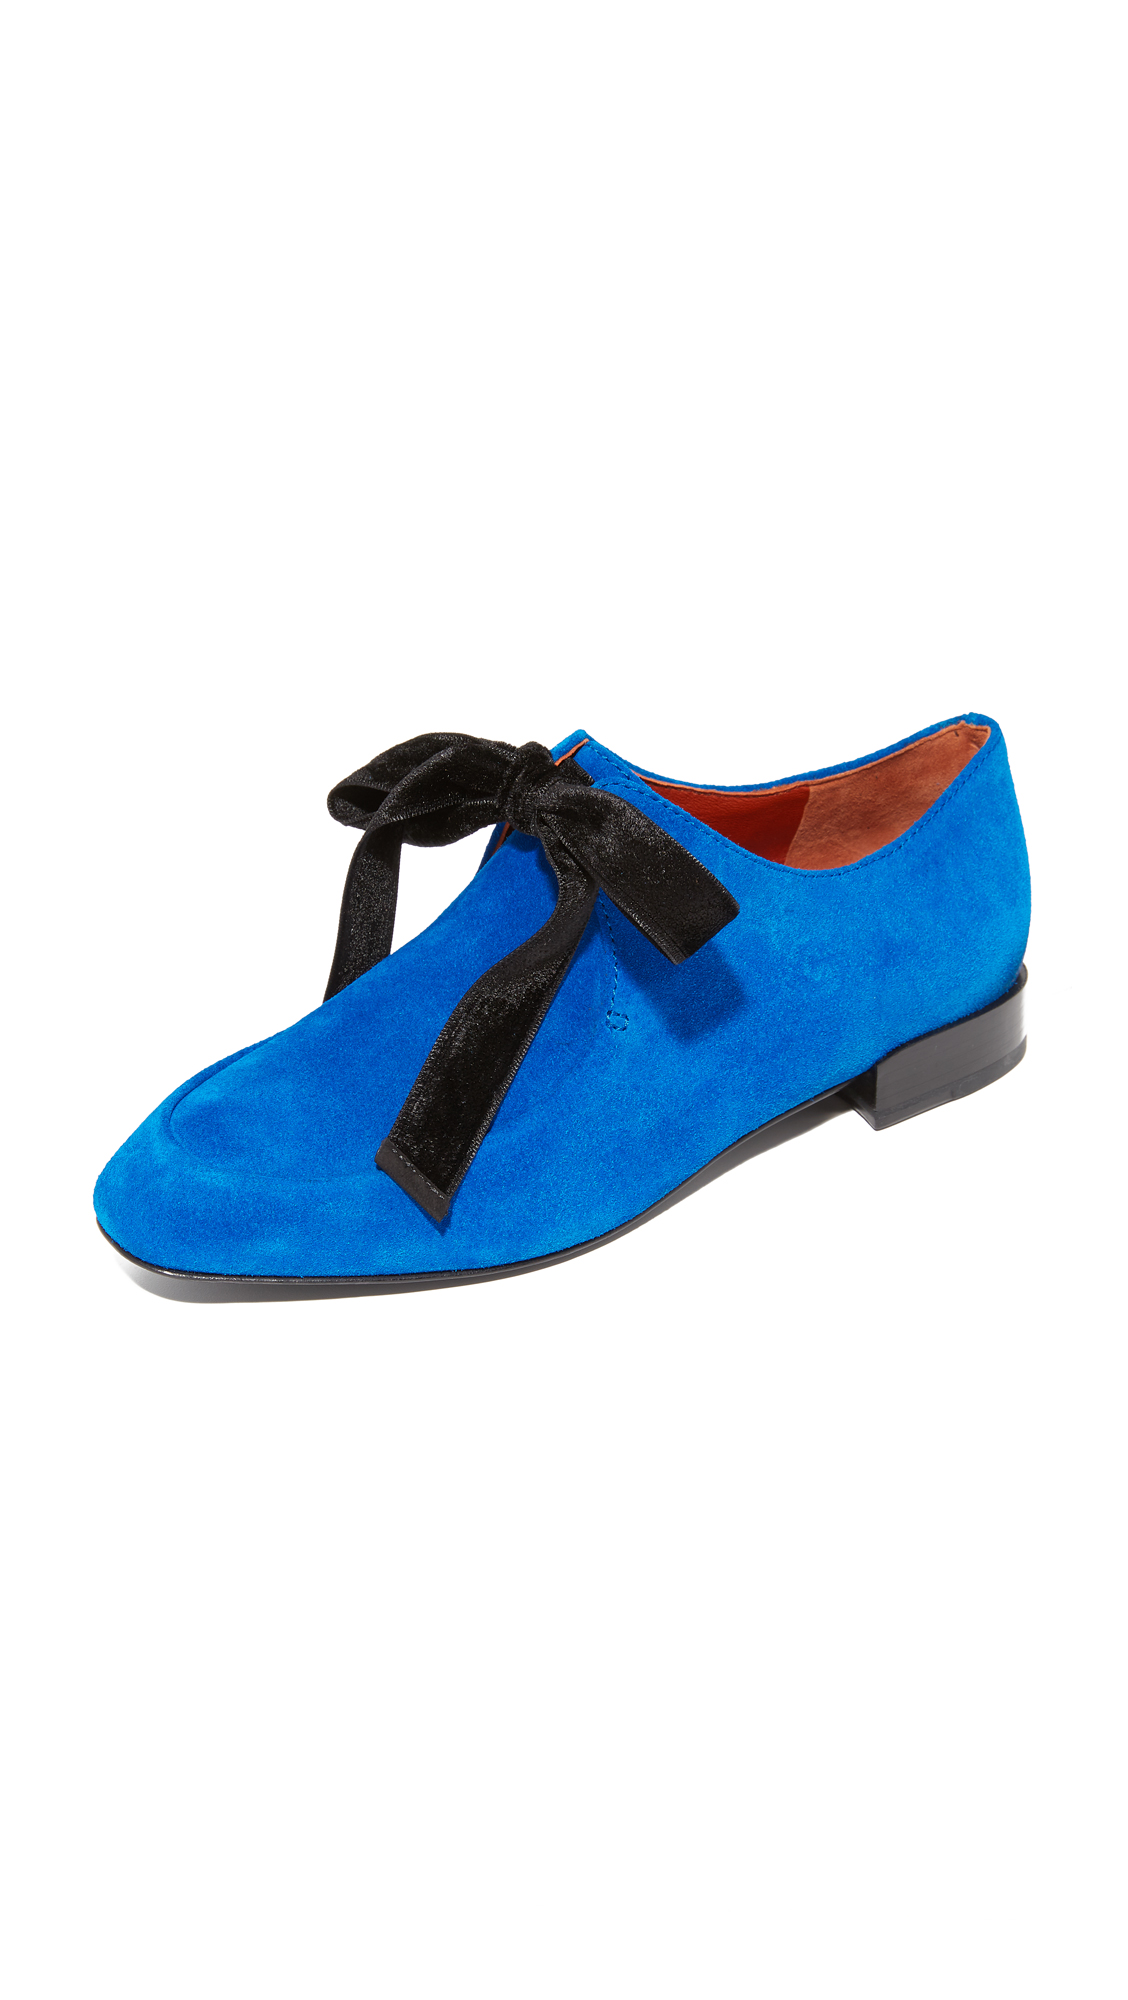 3.1 Phillip Lim Square Toe Lace Up Flats - Electric Blu